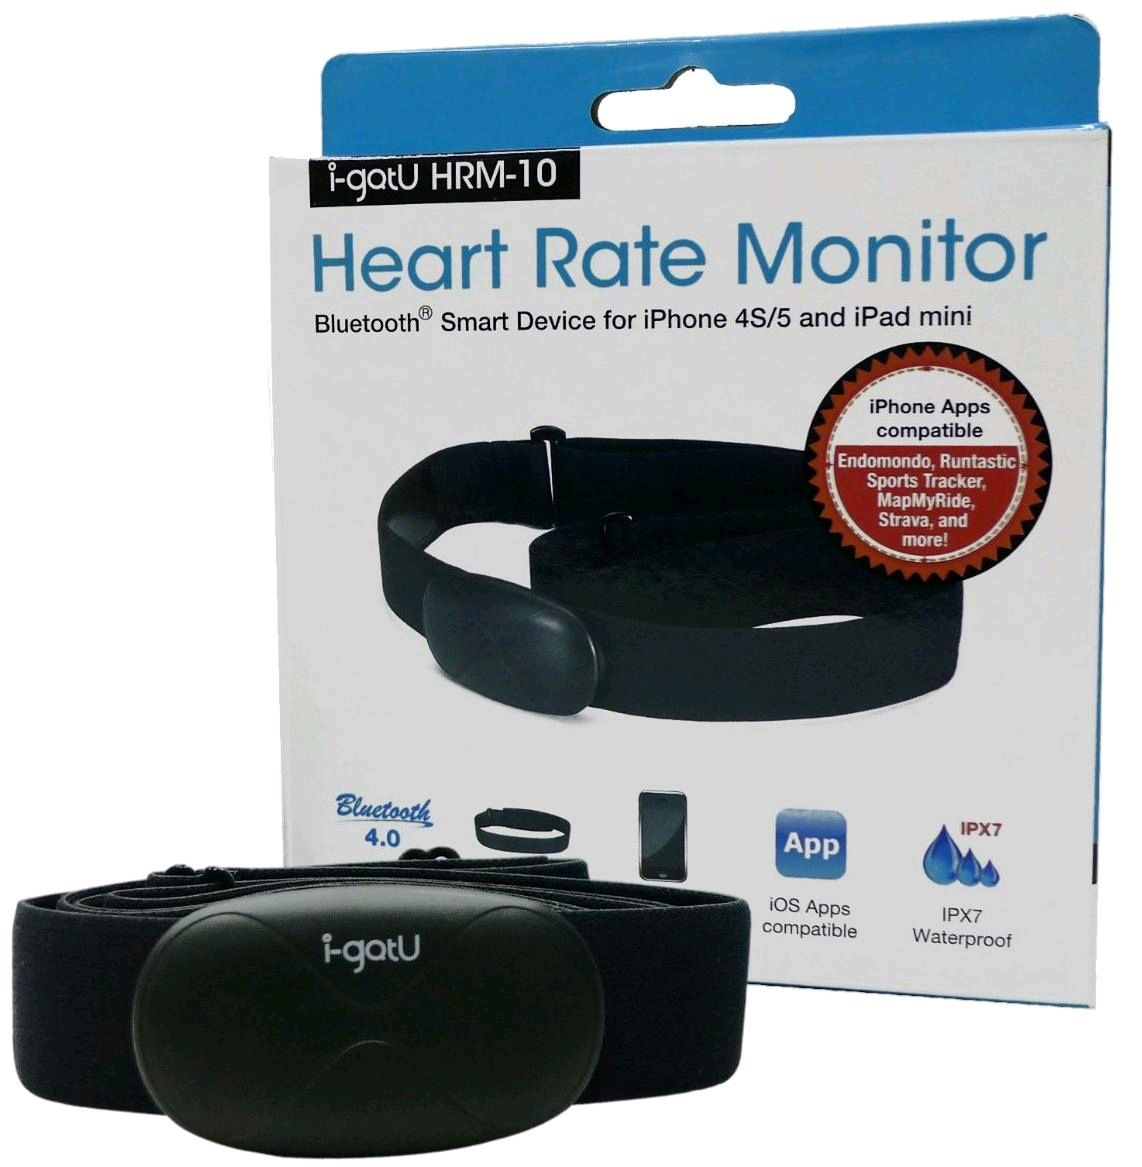 mobile-actionmobile-action-heart-rate-monitor-belt-bluetooth-low-energy